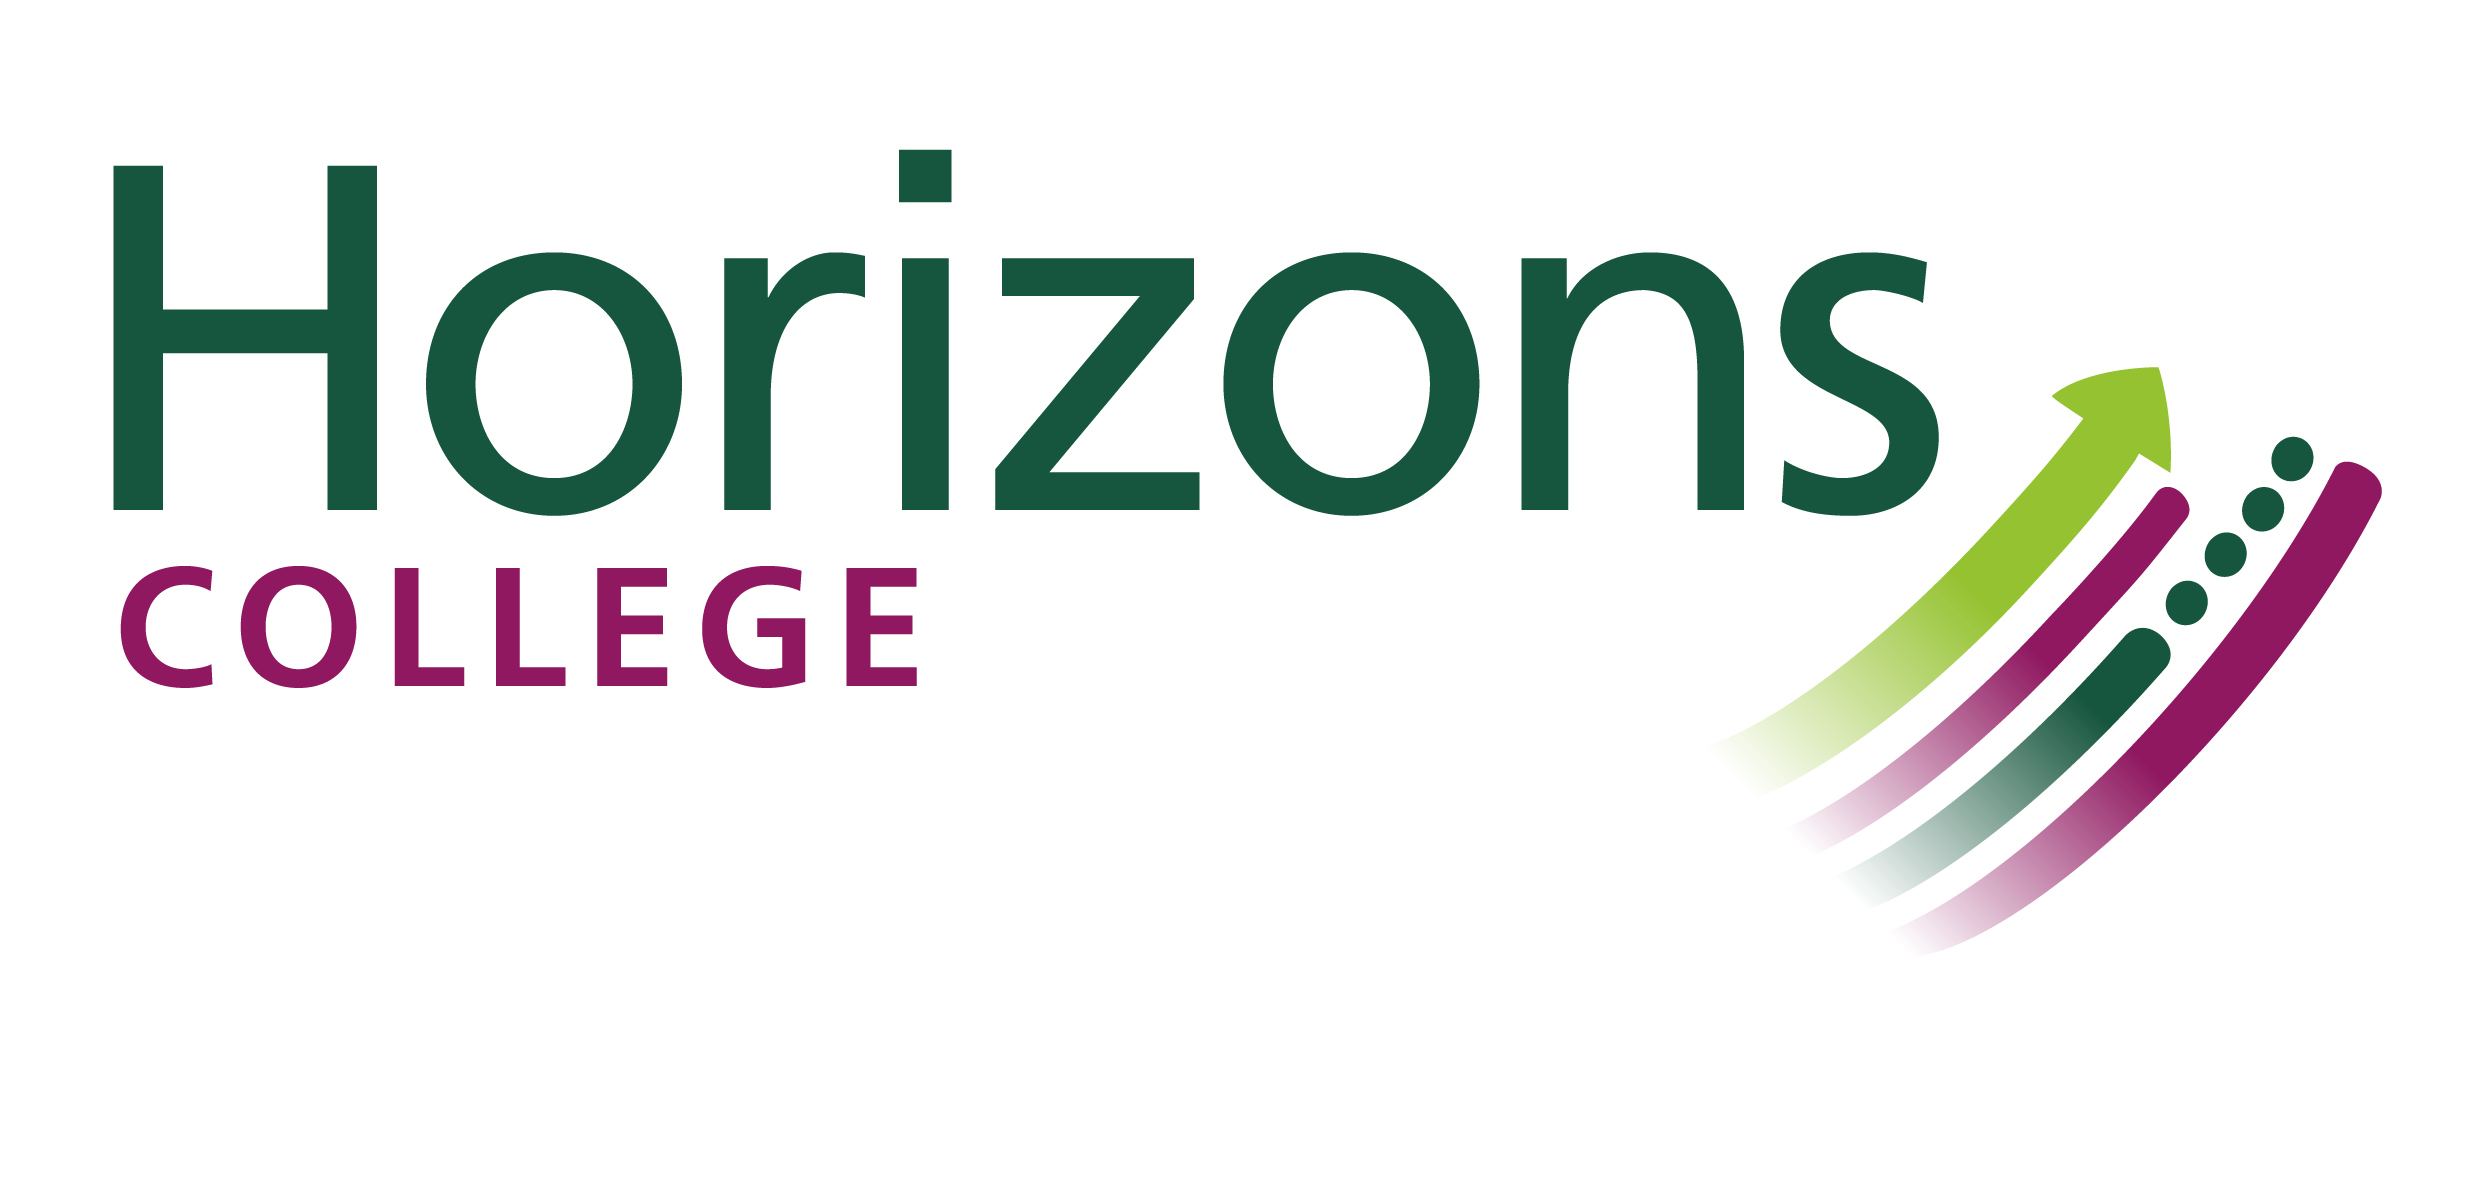 The logo of Horizons College